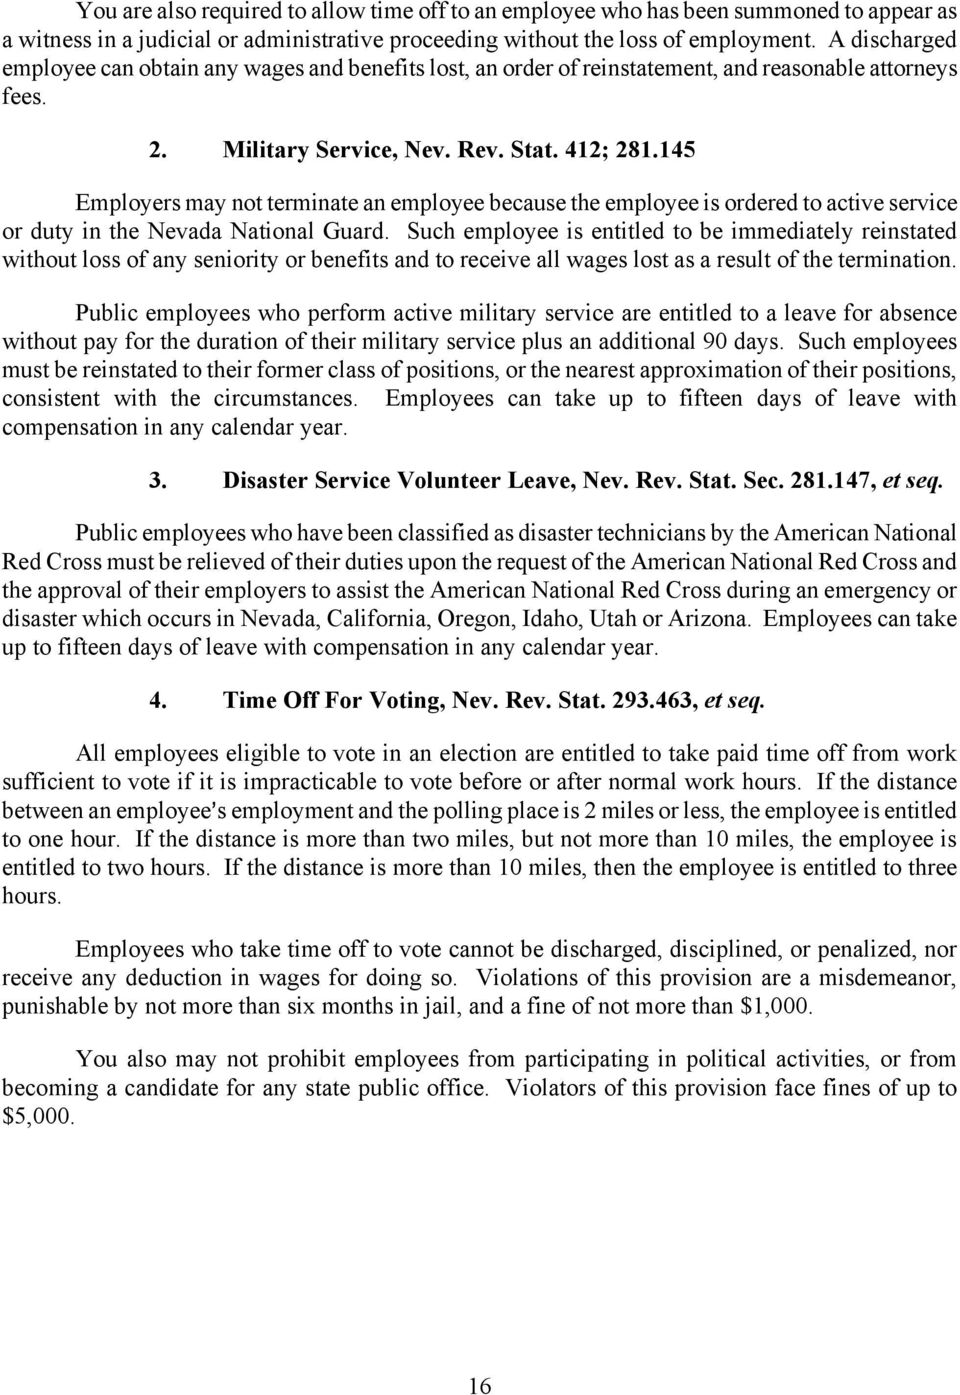 145 Employers may not terminate an employee because the employee is ordered to active service or duty in the Nevada National Guard.